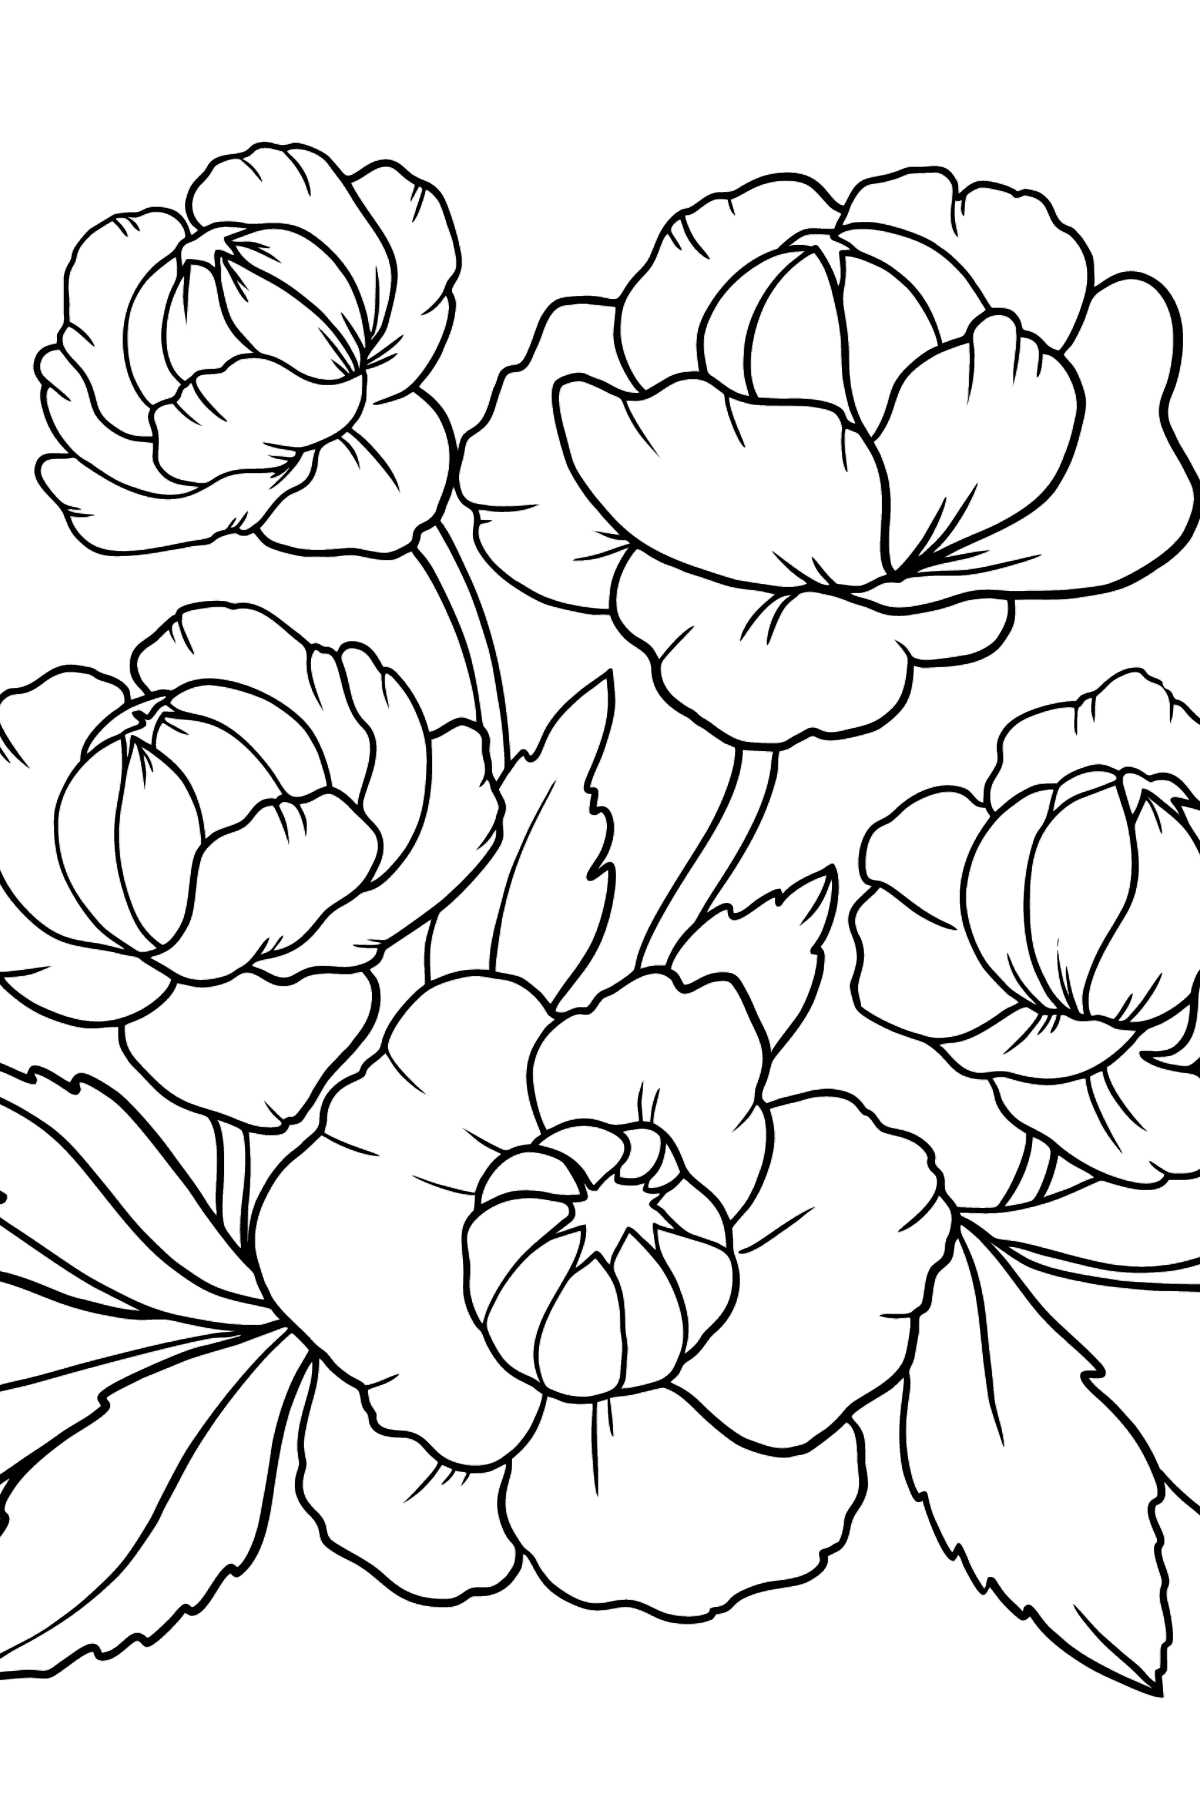 Flower Coloring Page - A Globeflower with Dark Red Petals - Coloring Pages for Kids